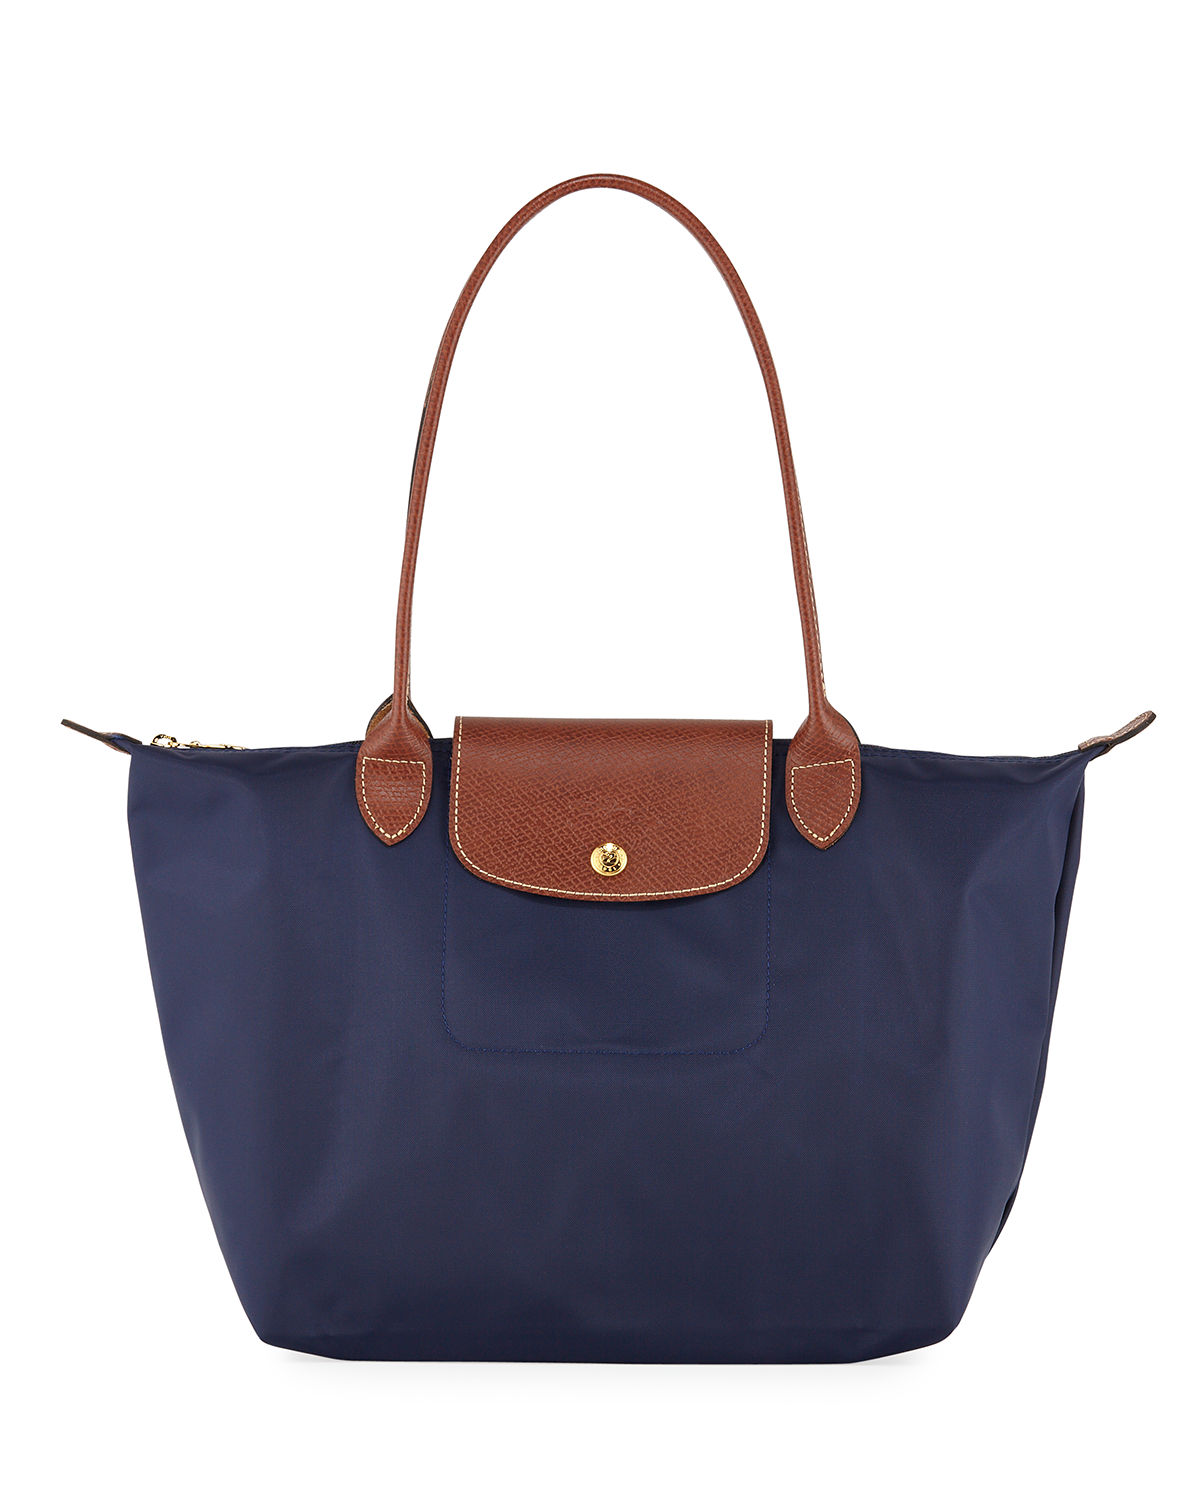 Le Pliage Small Shoulder Tote Bag